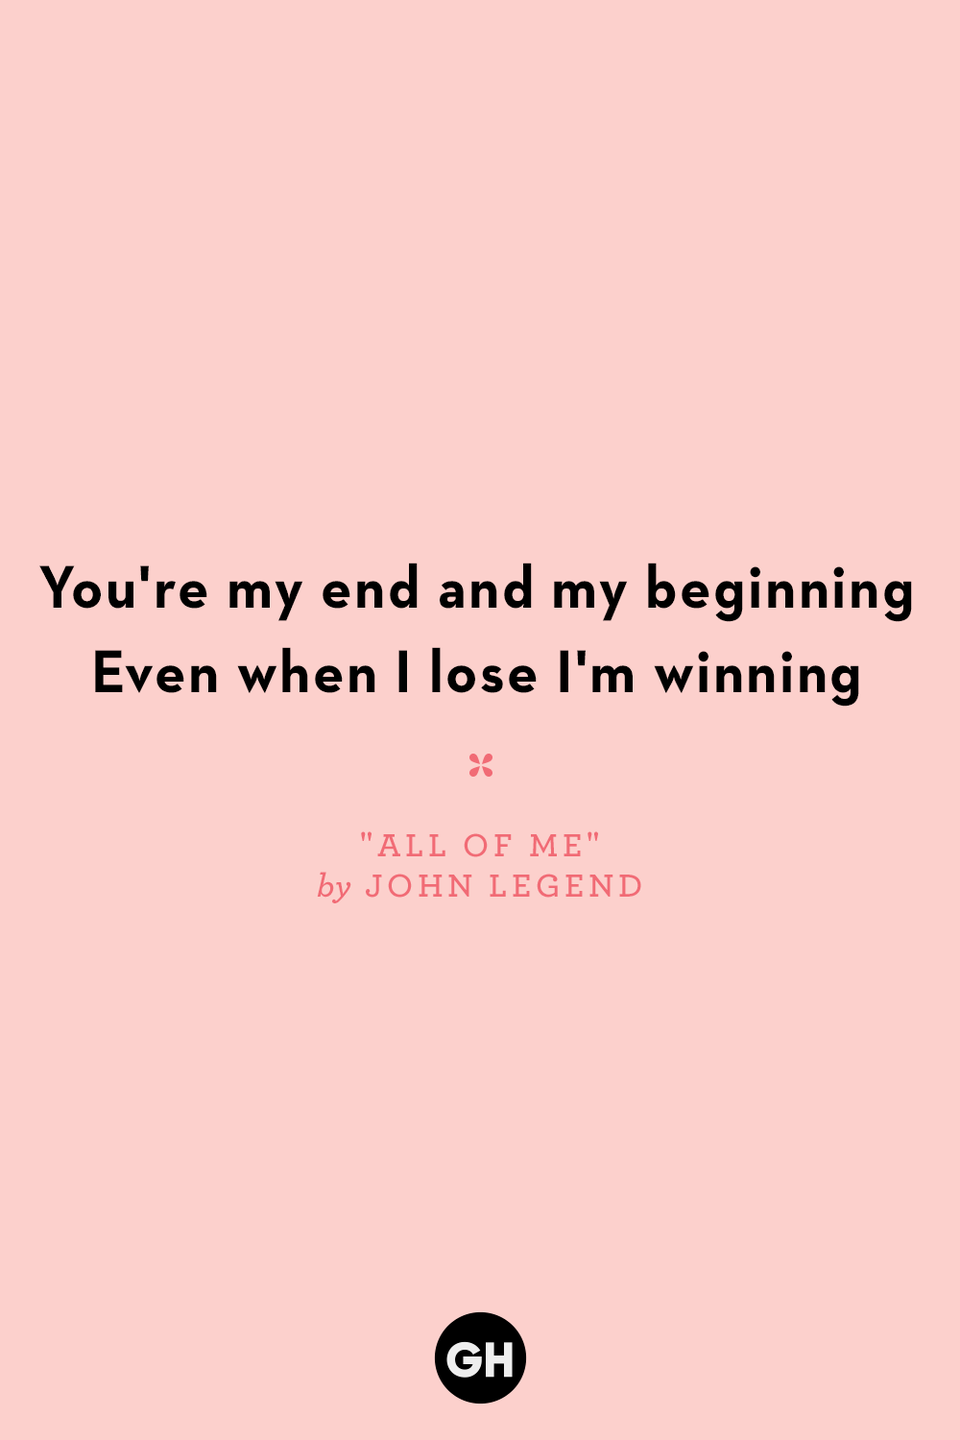 <p>You're my end and my beginning</p><p>Even when I lose I'm winning</p>